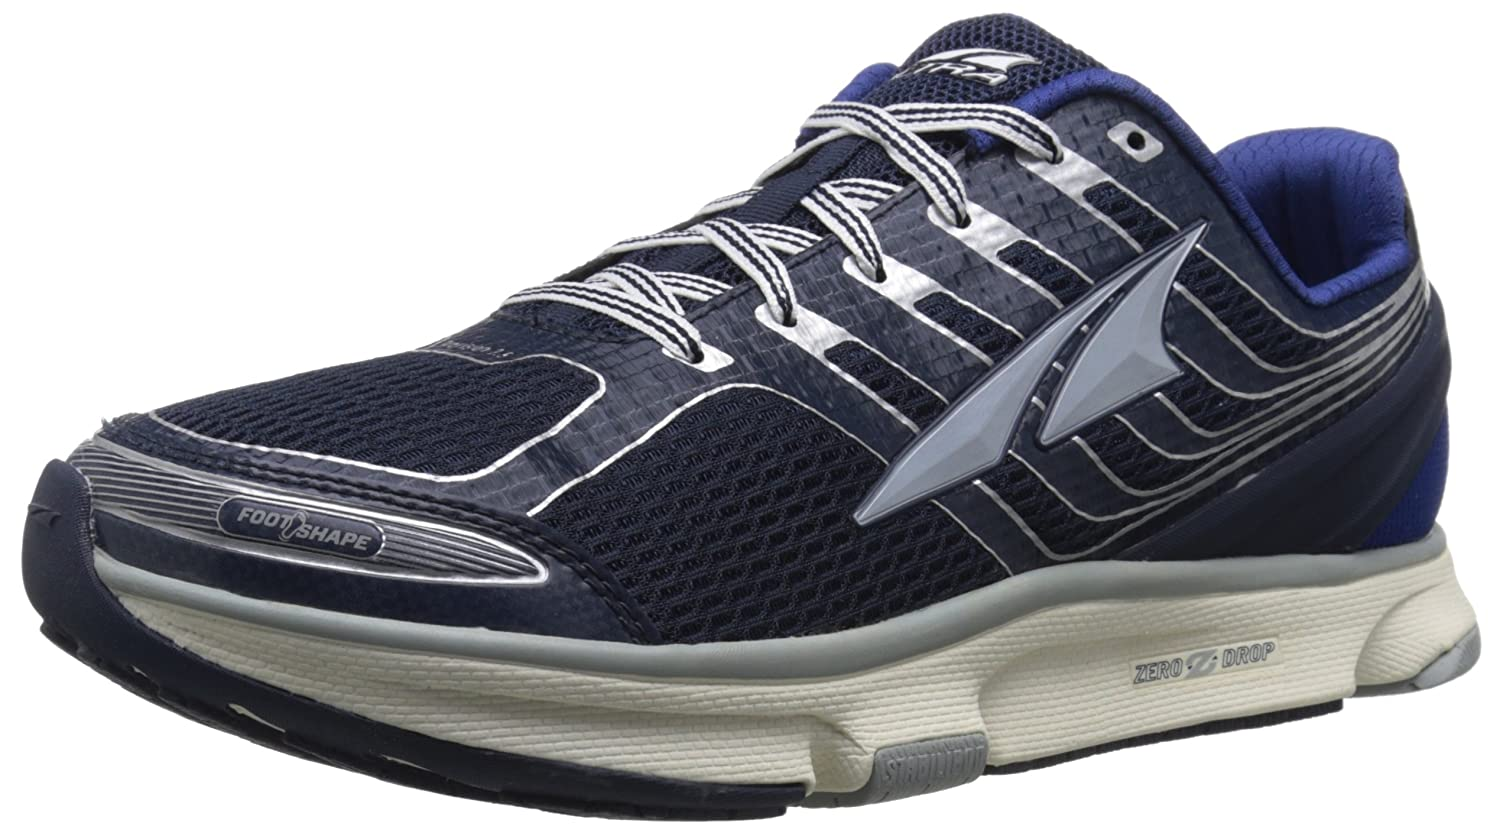 Running shoes with better stability